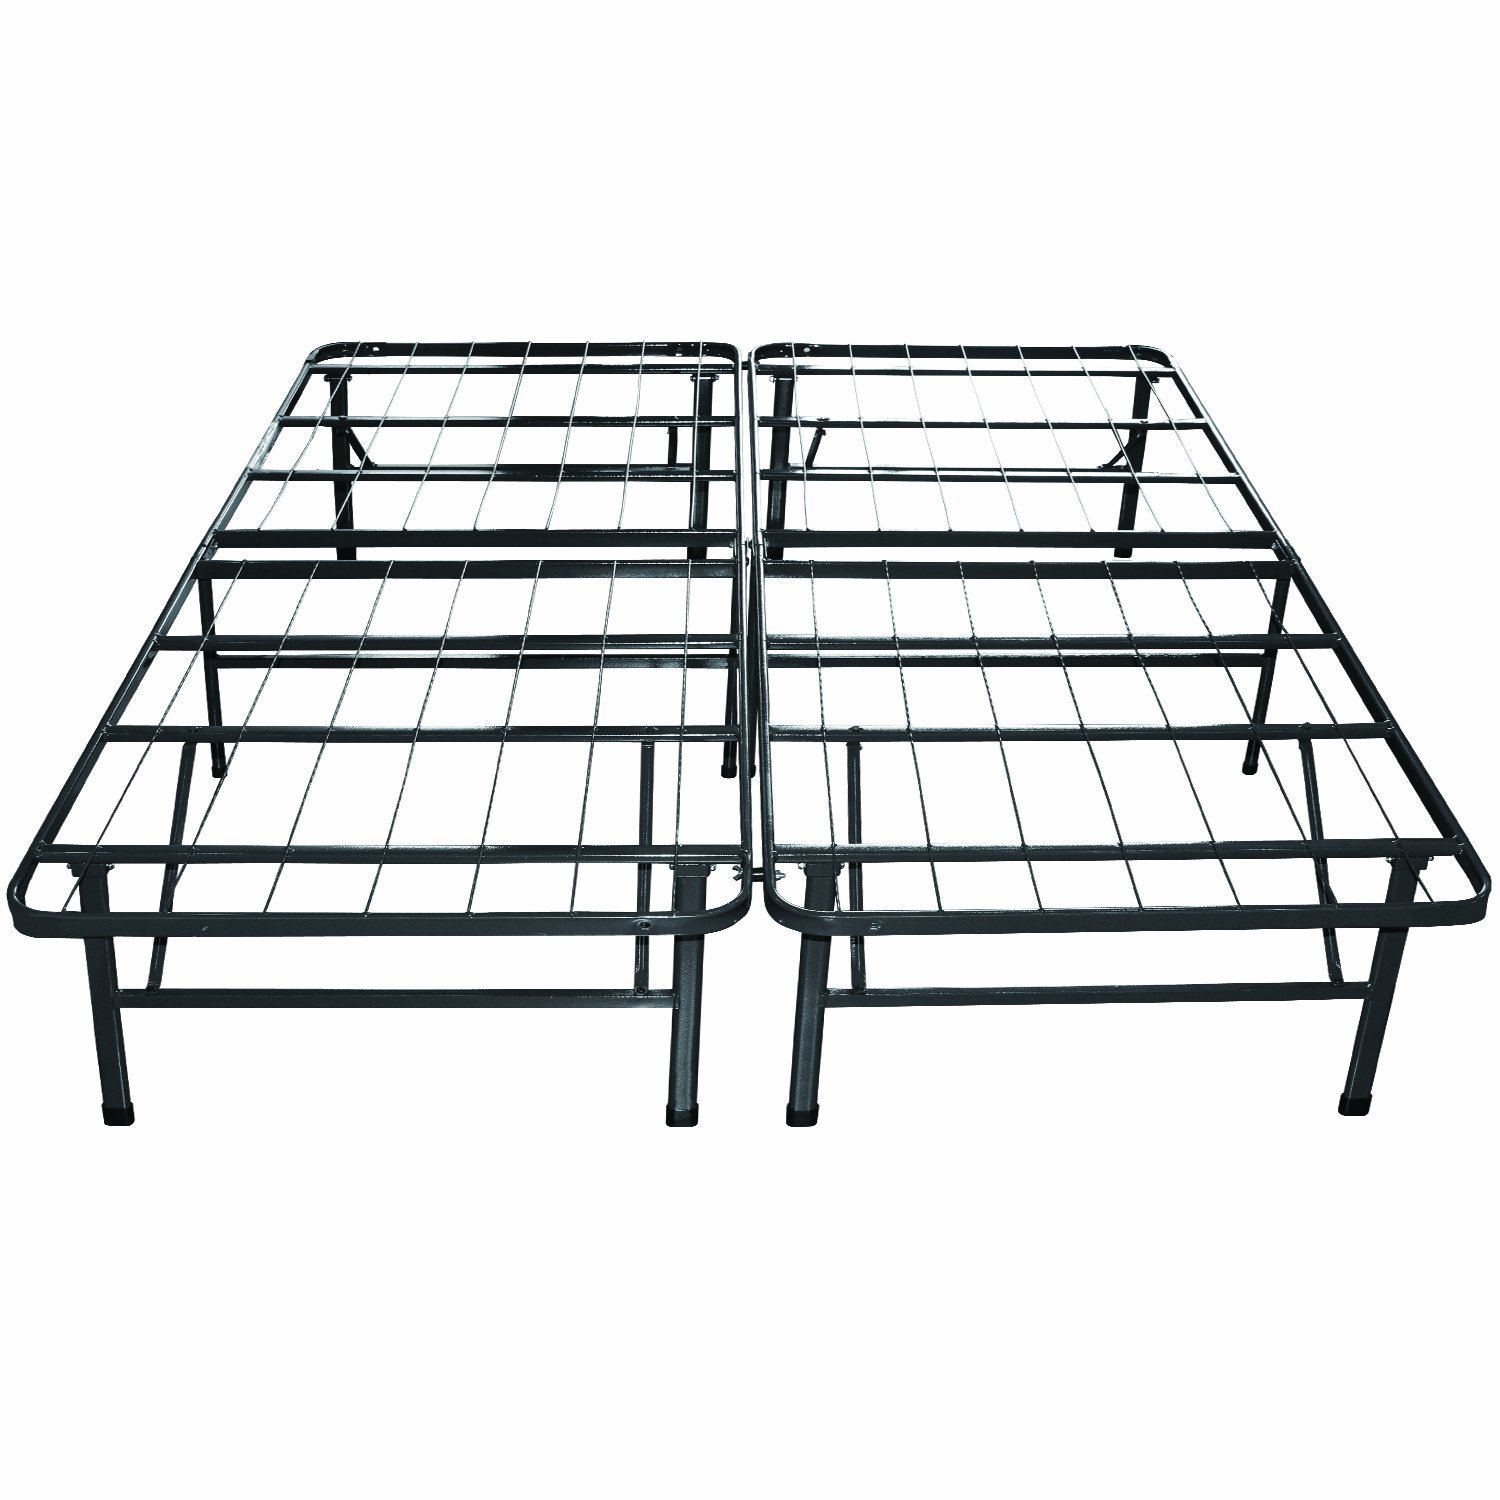 Top 10 California King Bed Frame Reviews – Your Guide to Choosing the Best One in 2019